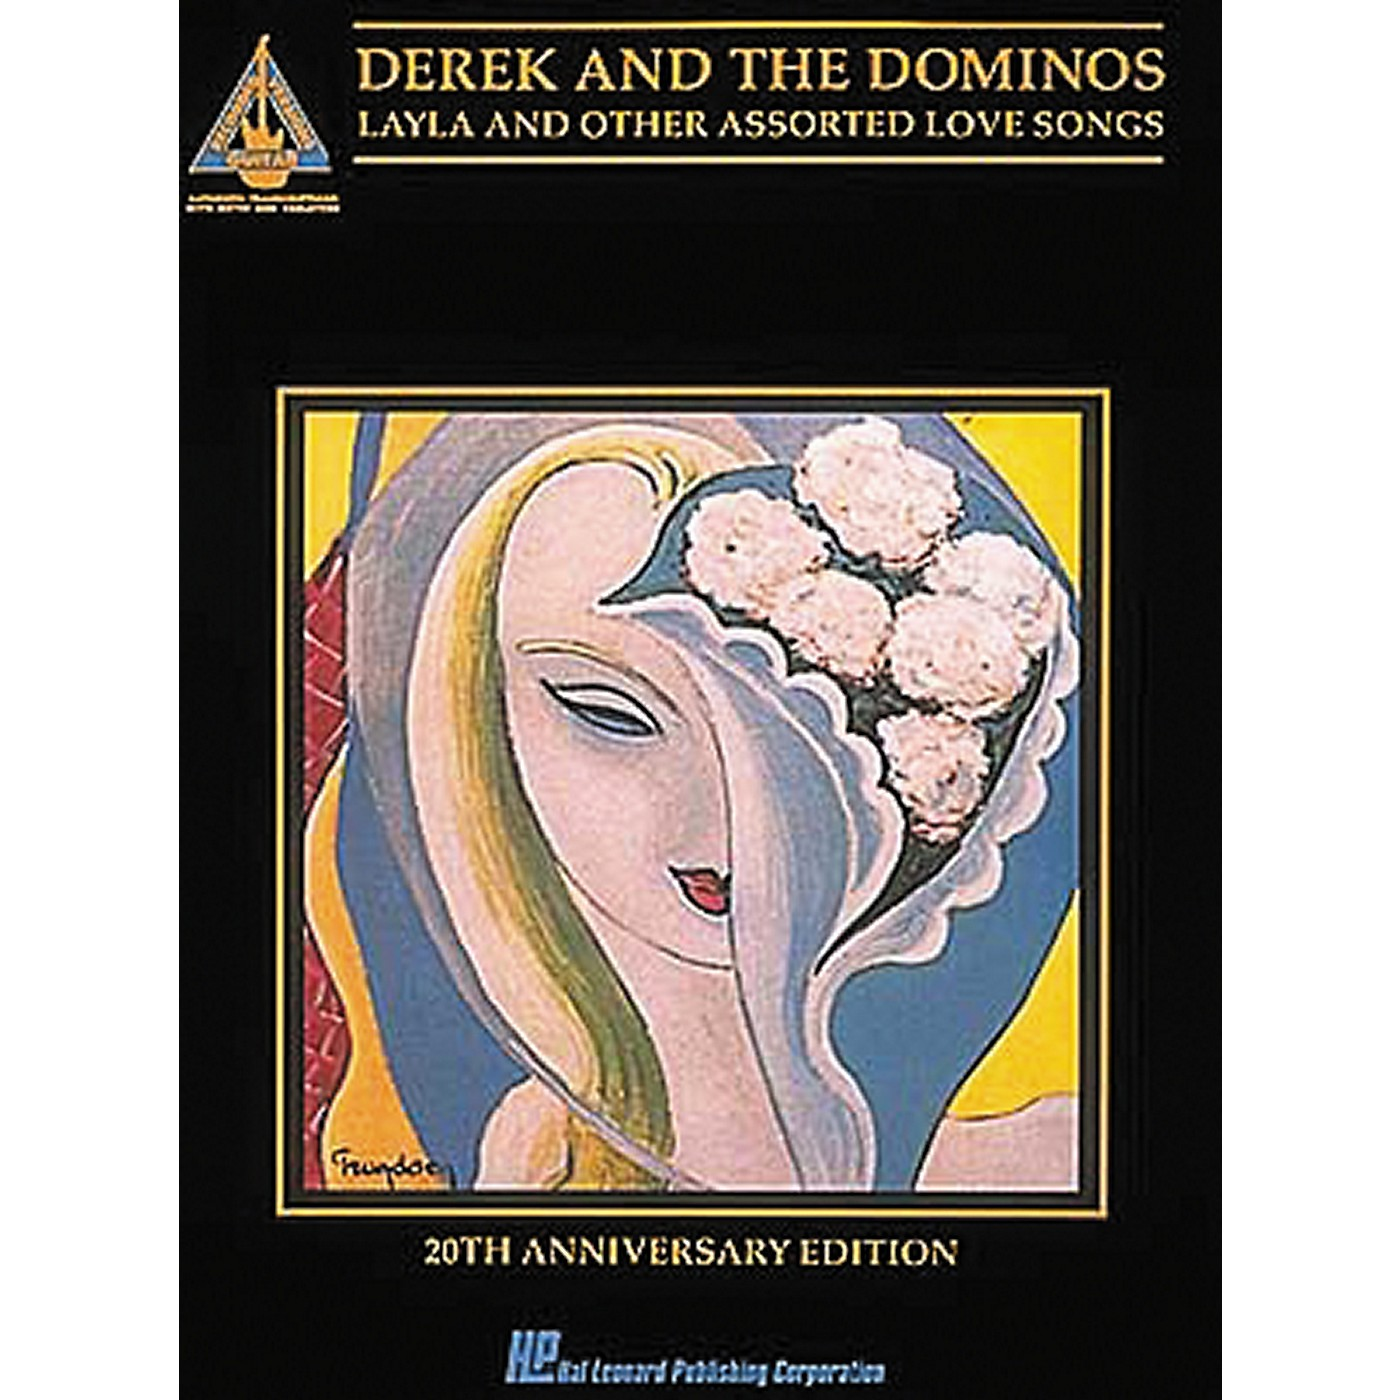 Hal Leonard Derek & The Dominos - Layla & Other Assorted Love Songs Guitar Tab Songbook thumbnail